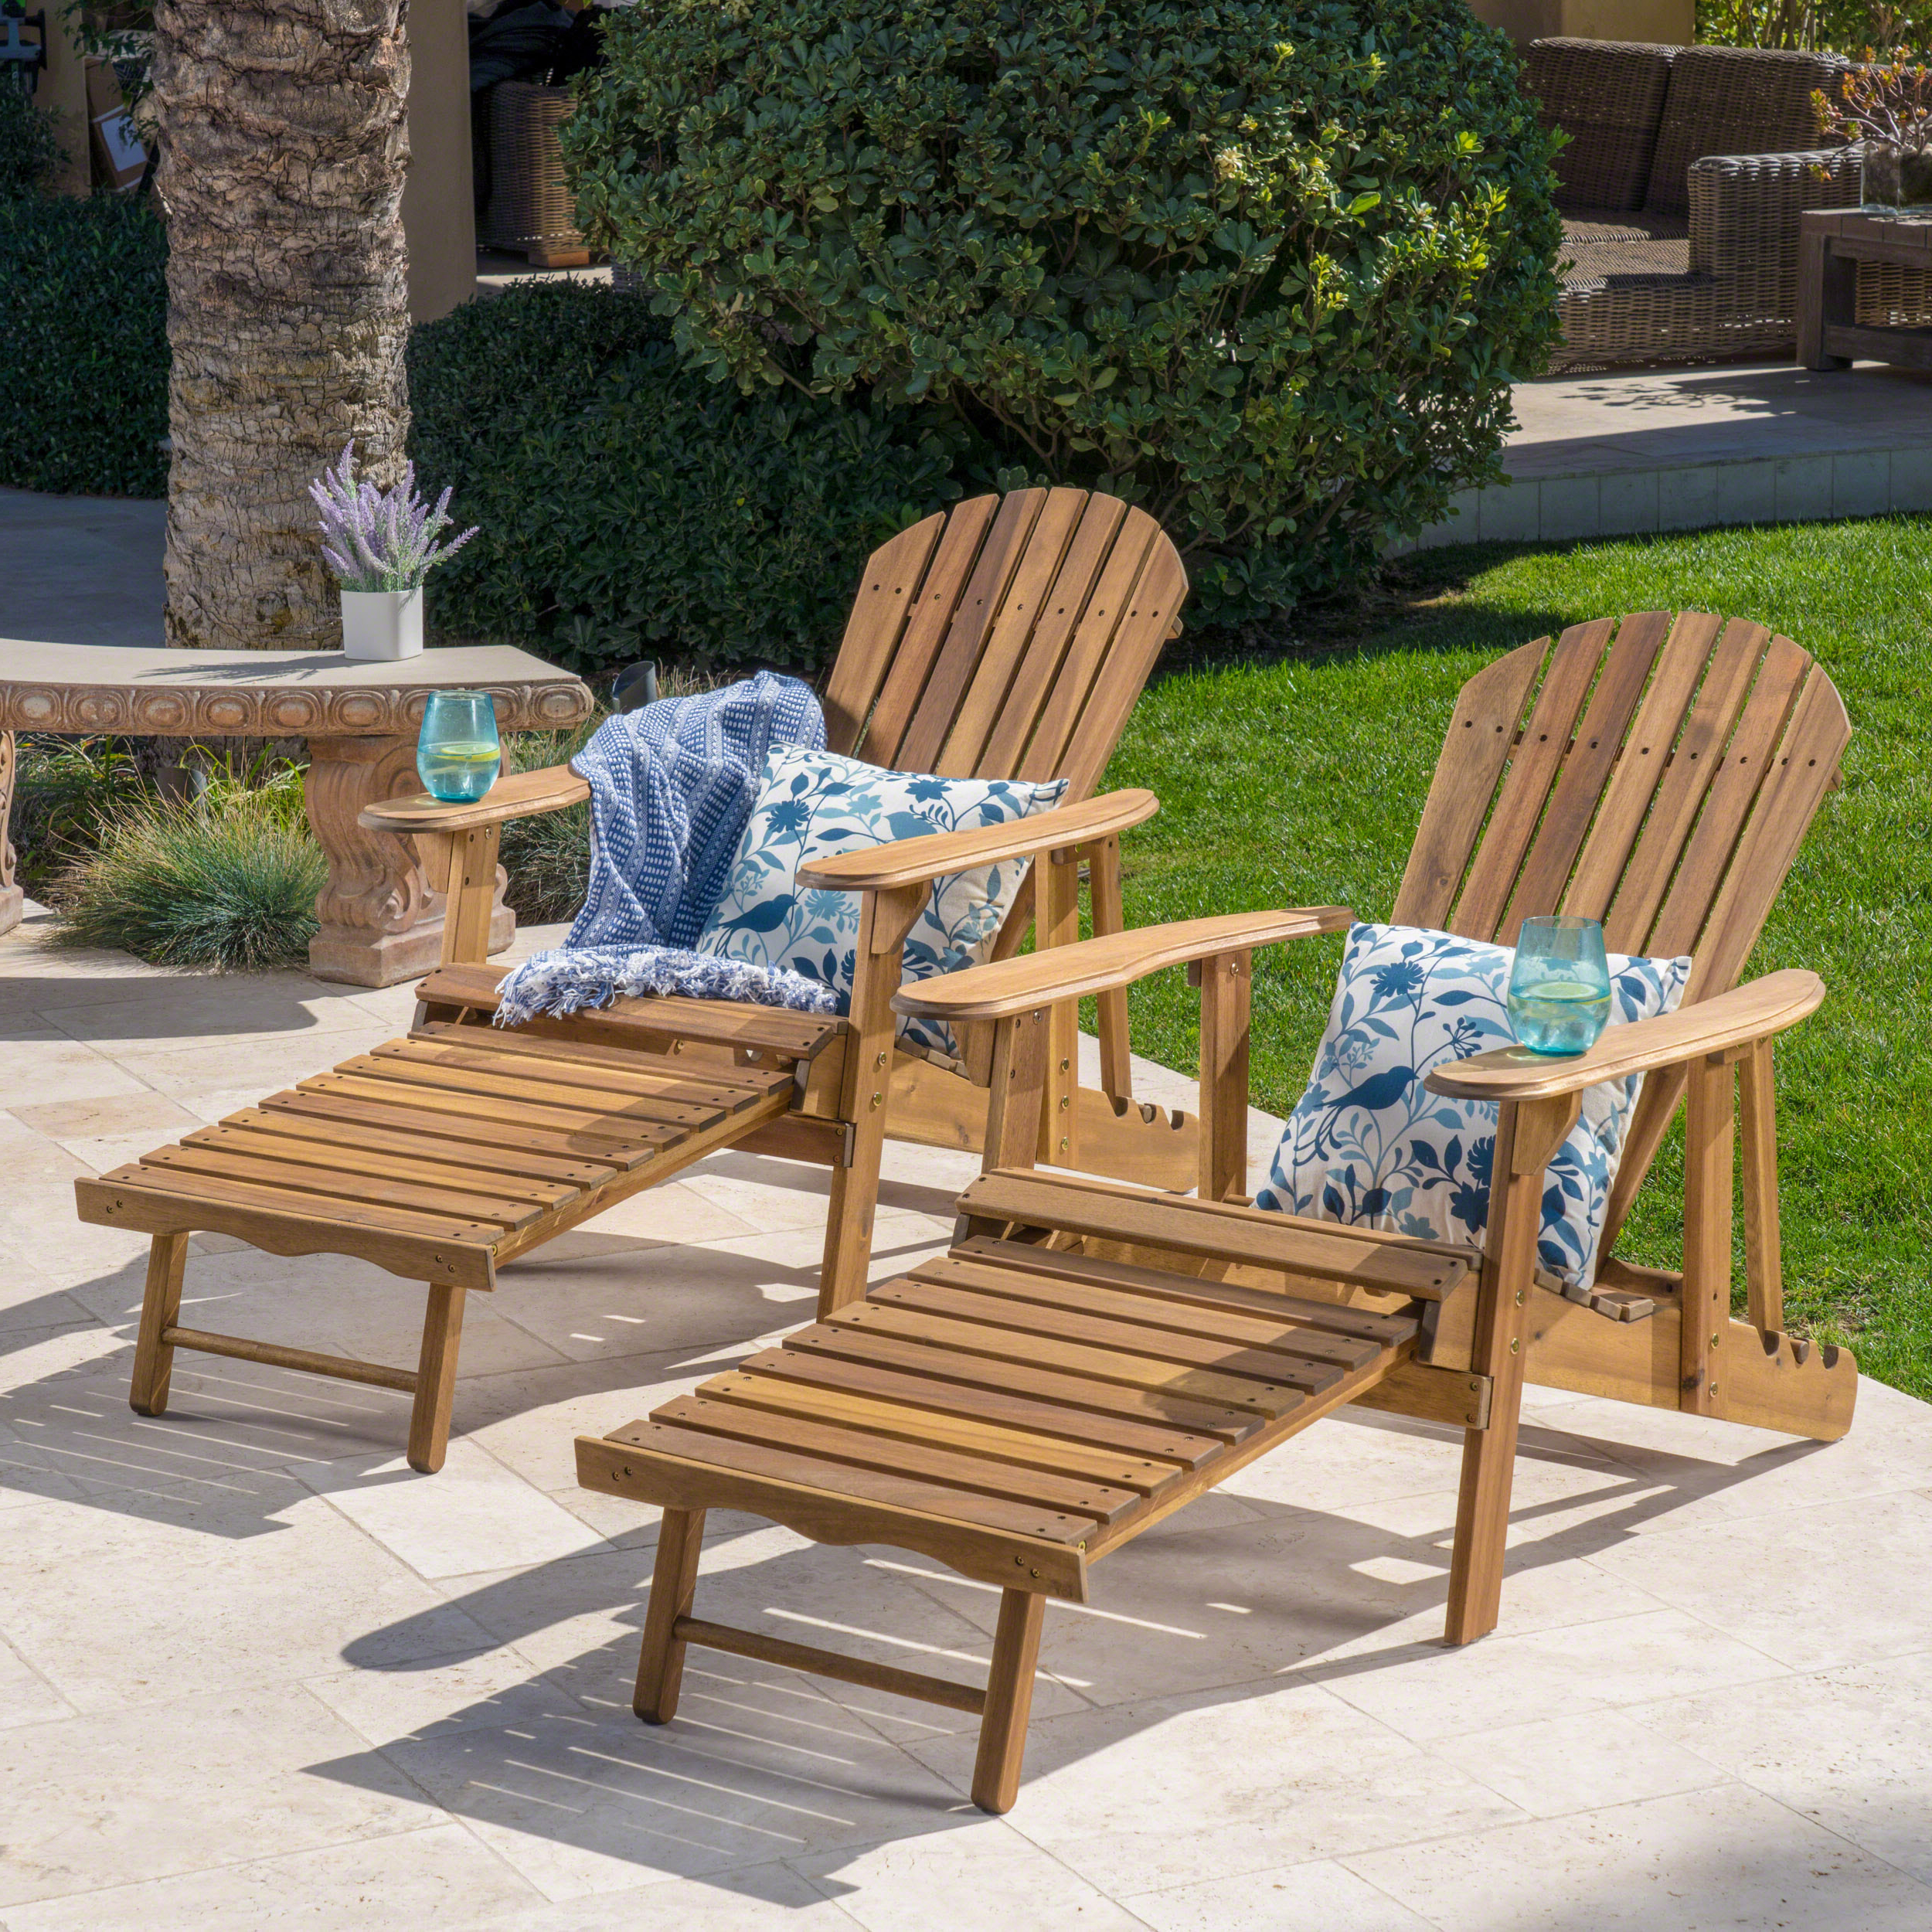 Munoz Reclining Wood Adirondack Chair With Footrest, Set Of 2, Natural  Stained For Most Up To Date Adirondack Chairs With Footrest (View 17 of 25)